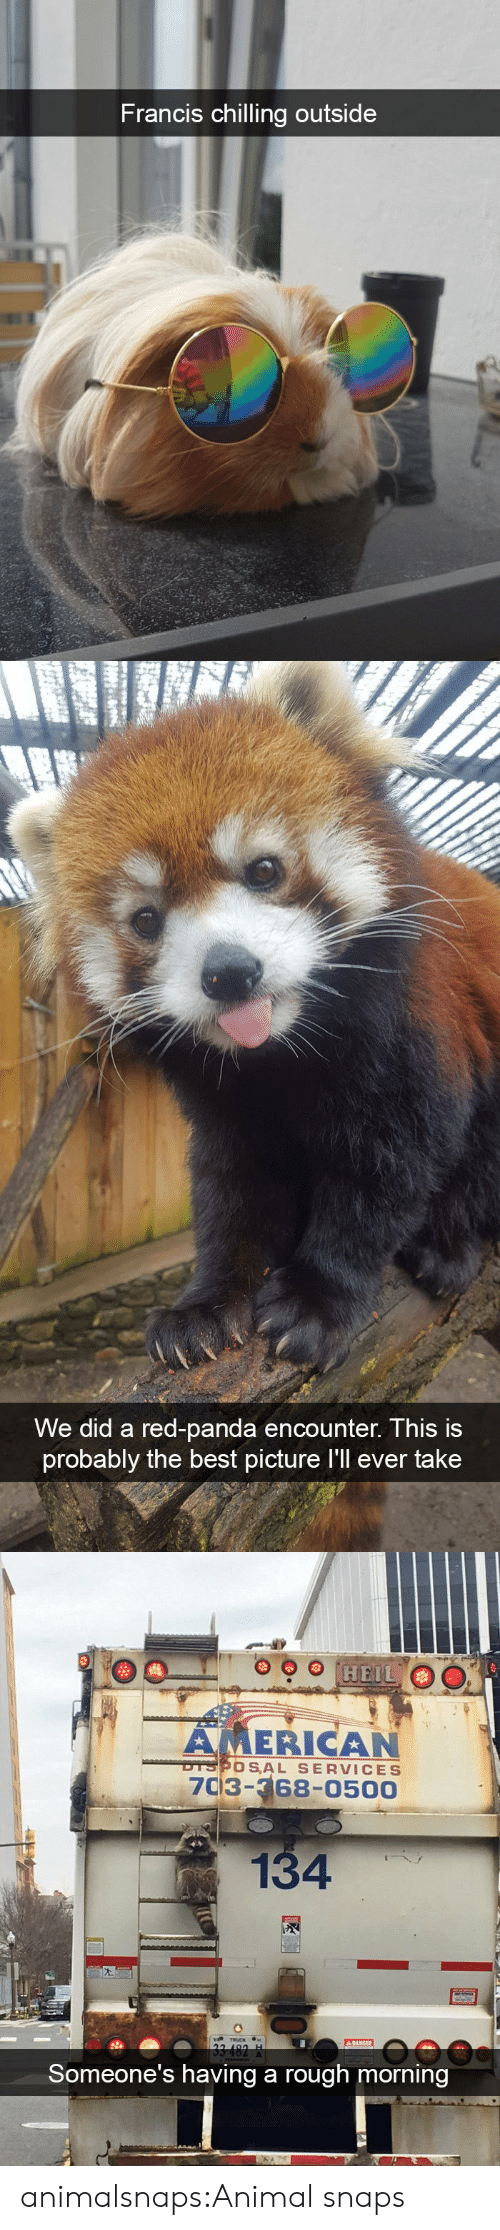 Target, Tumblr, and Panda: Francis chilling outsi  de   We did a red-panda encounter. This is  probably the best picture I'll ever take   AMERICAN  7C3-68-0500  OSAL SERVICES  134  Someone's having a rough morning animalsnaps:Animal snaps